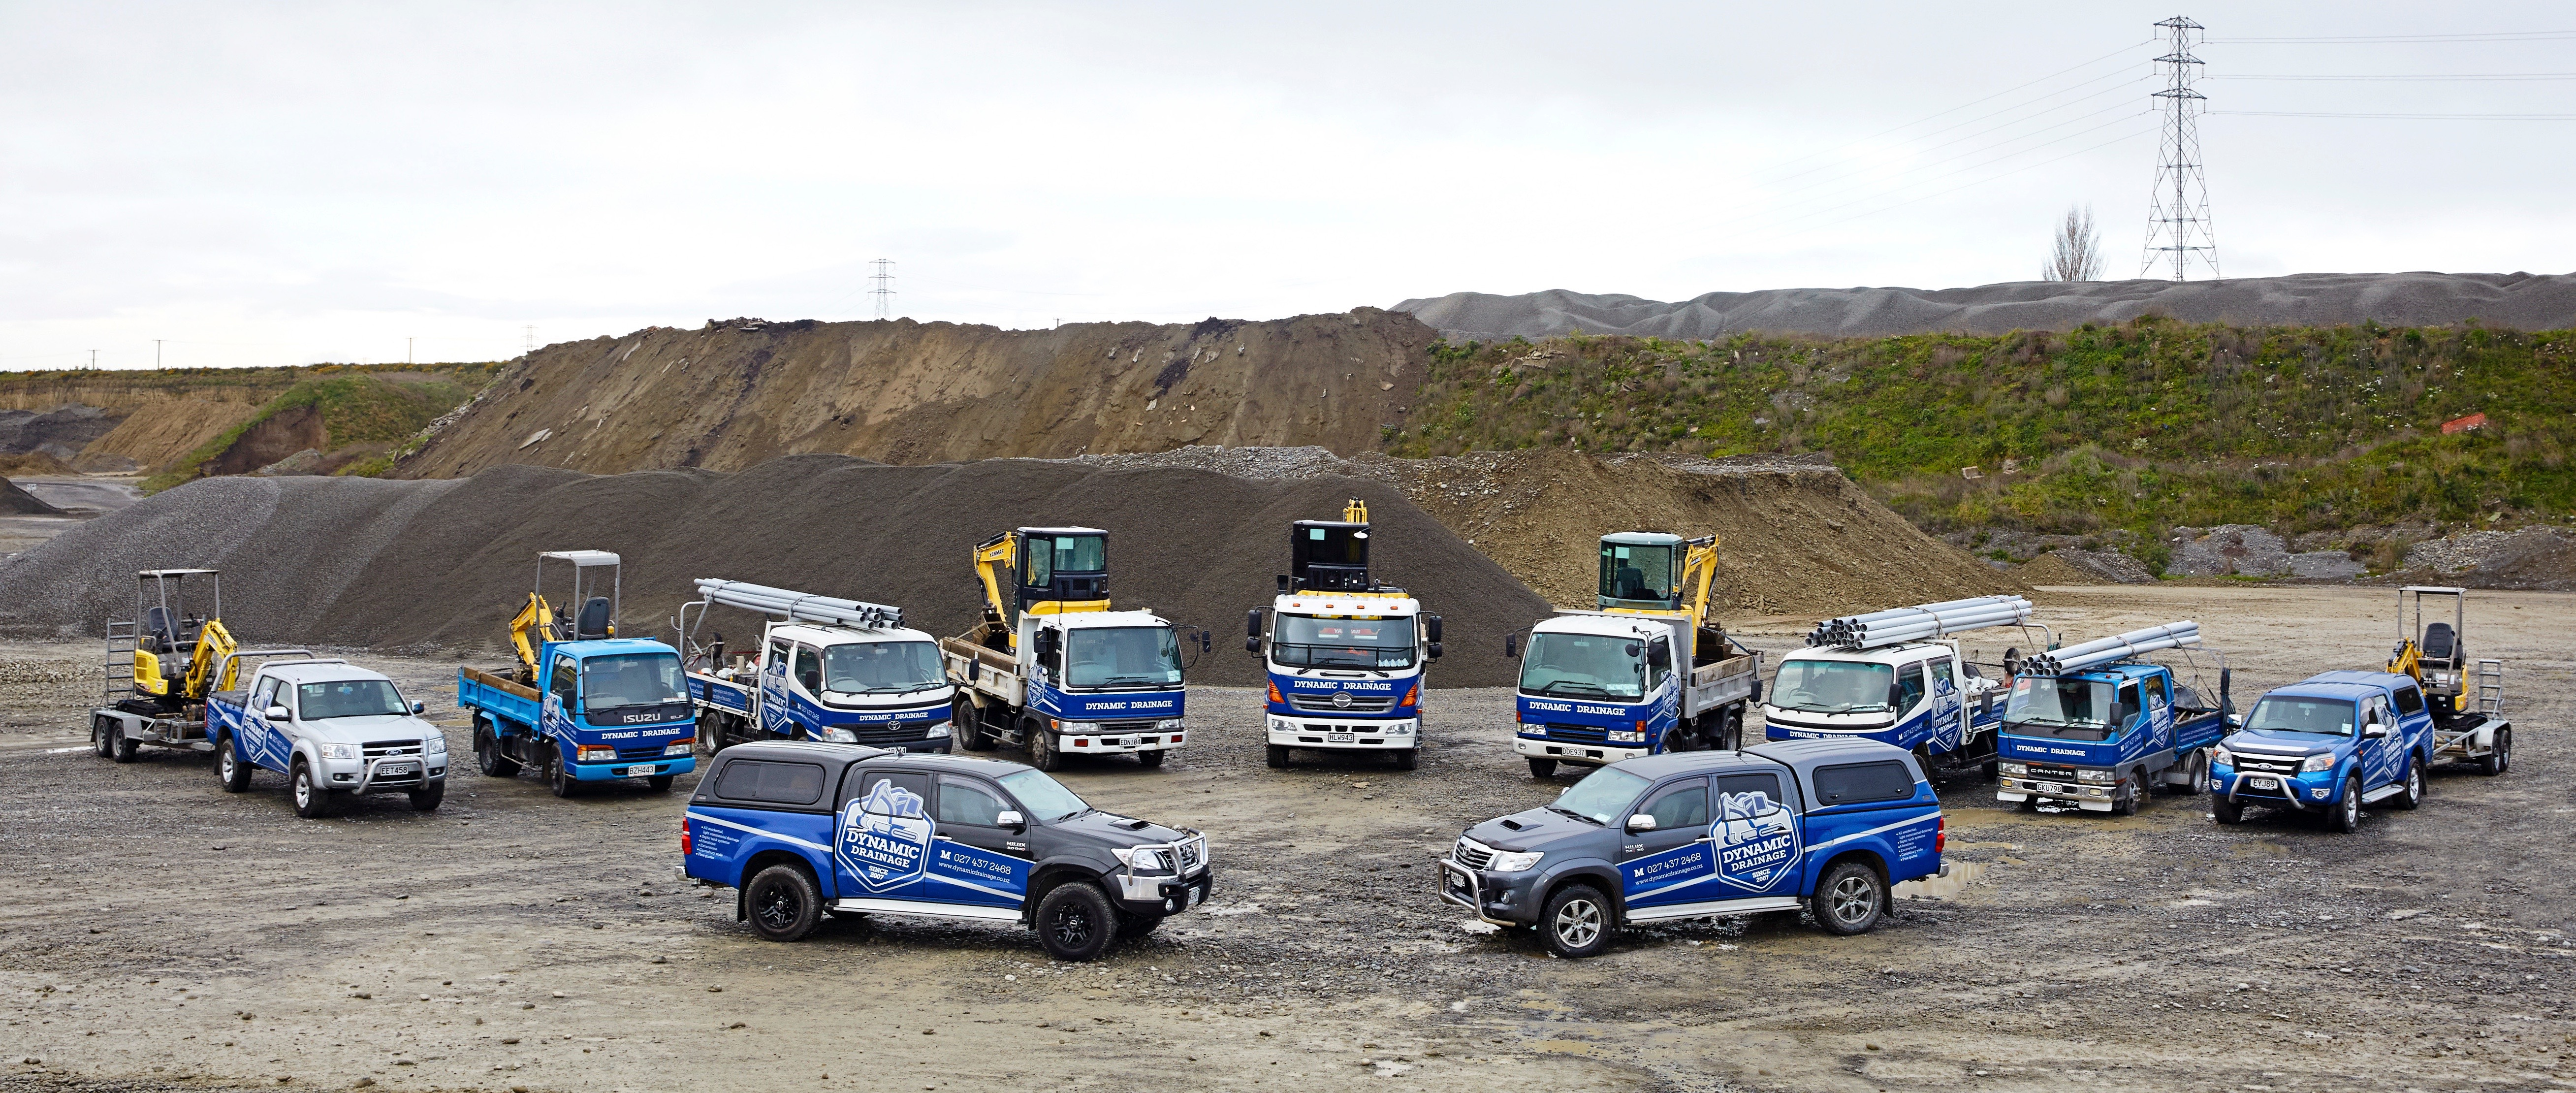 dynamic drainage fleet photo FORMATTED 1